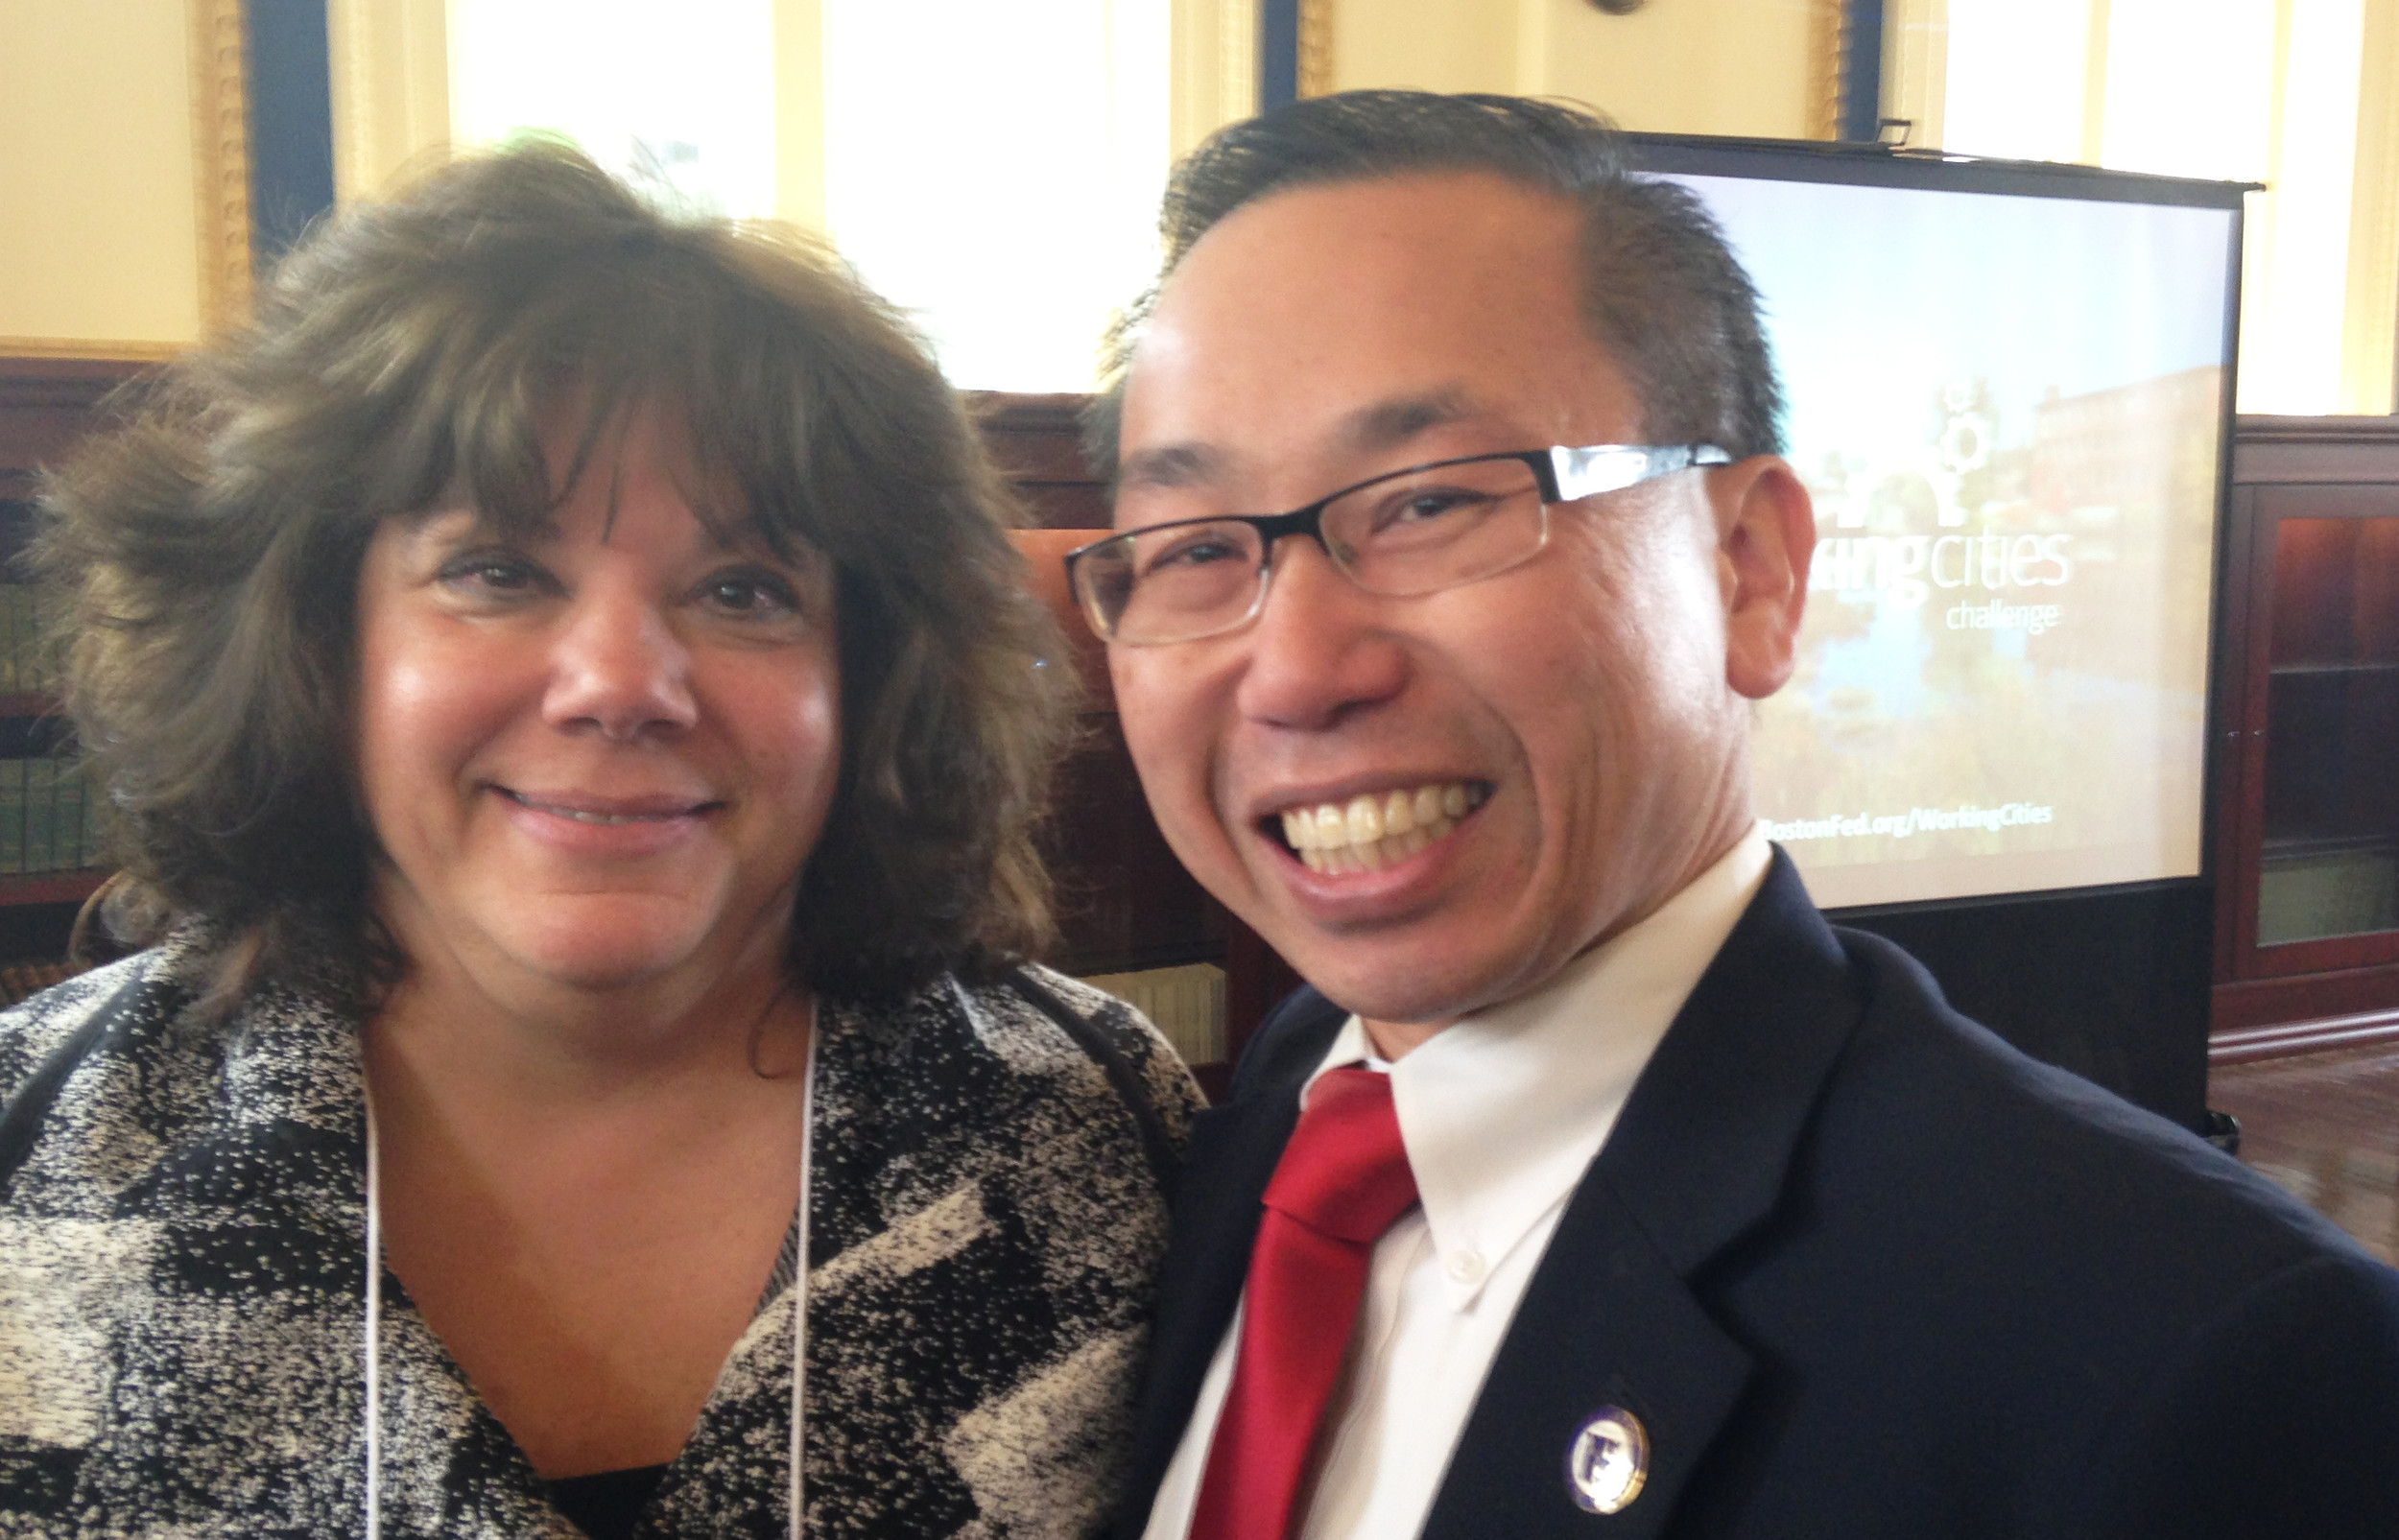 Cranston Mayor Allan Fung, right, with Joanne McGunagle, president and CEO of the Comprehensive Community Action Program, at the May 12 celebration of the Working Cities Challenge.